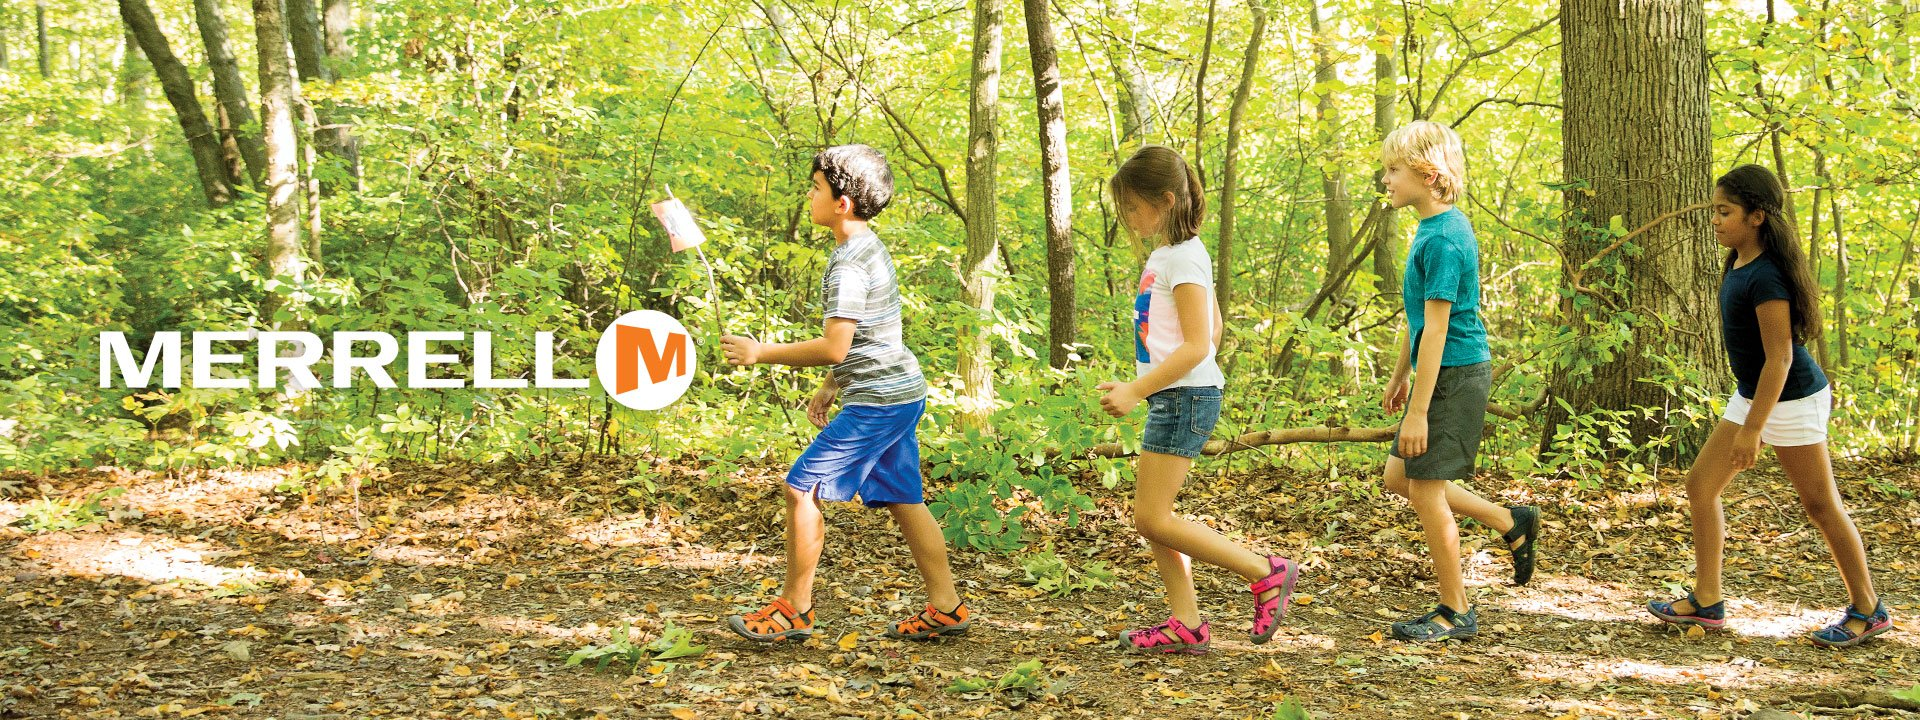 Merrell logo. Image of kids playing in the woods.